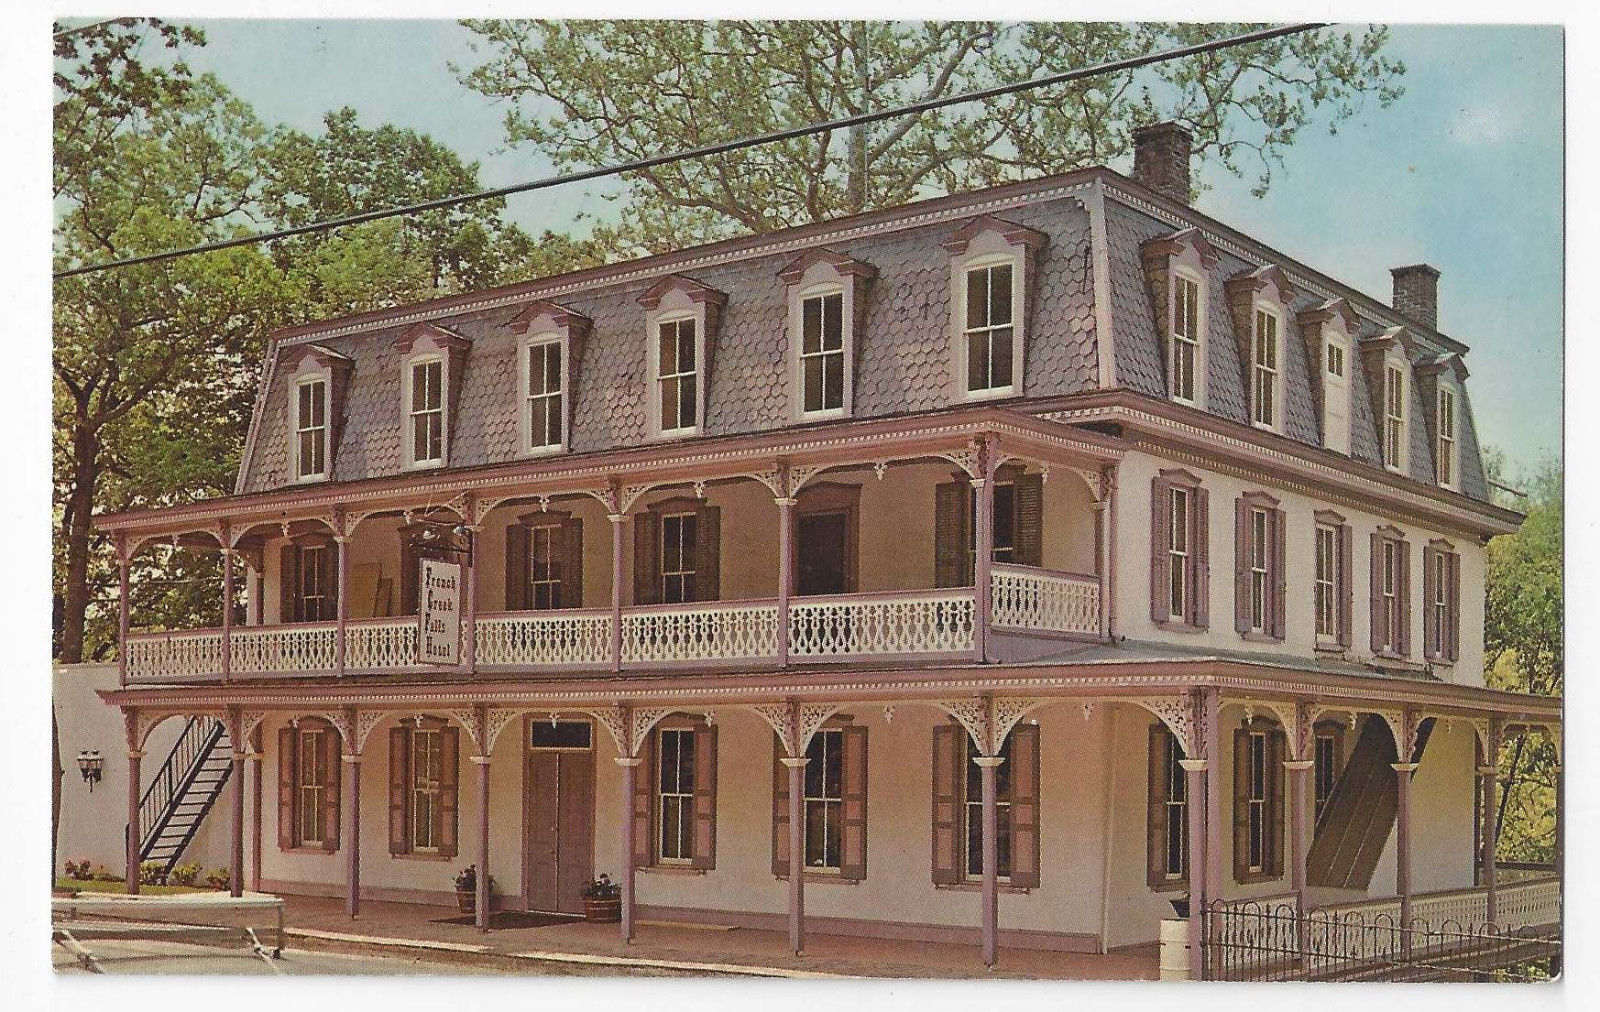 St Peters Village PA Main Hotel and Restaurant Vintage Postcard